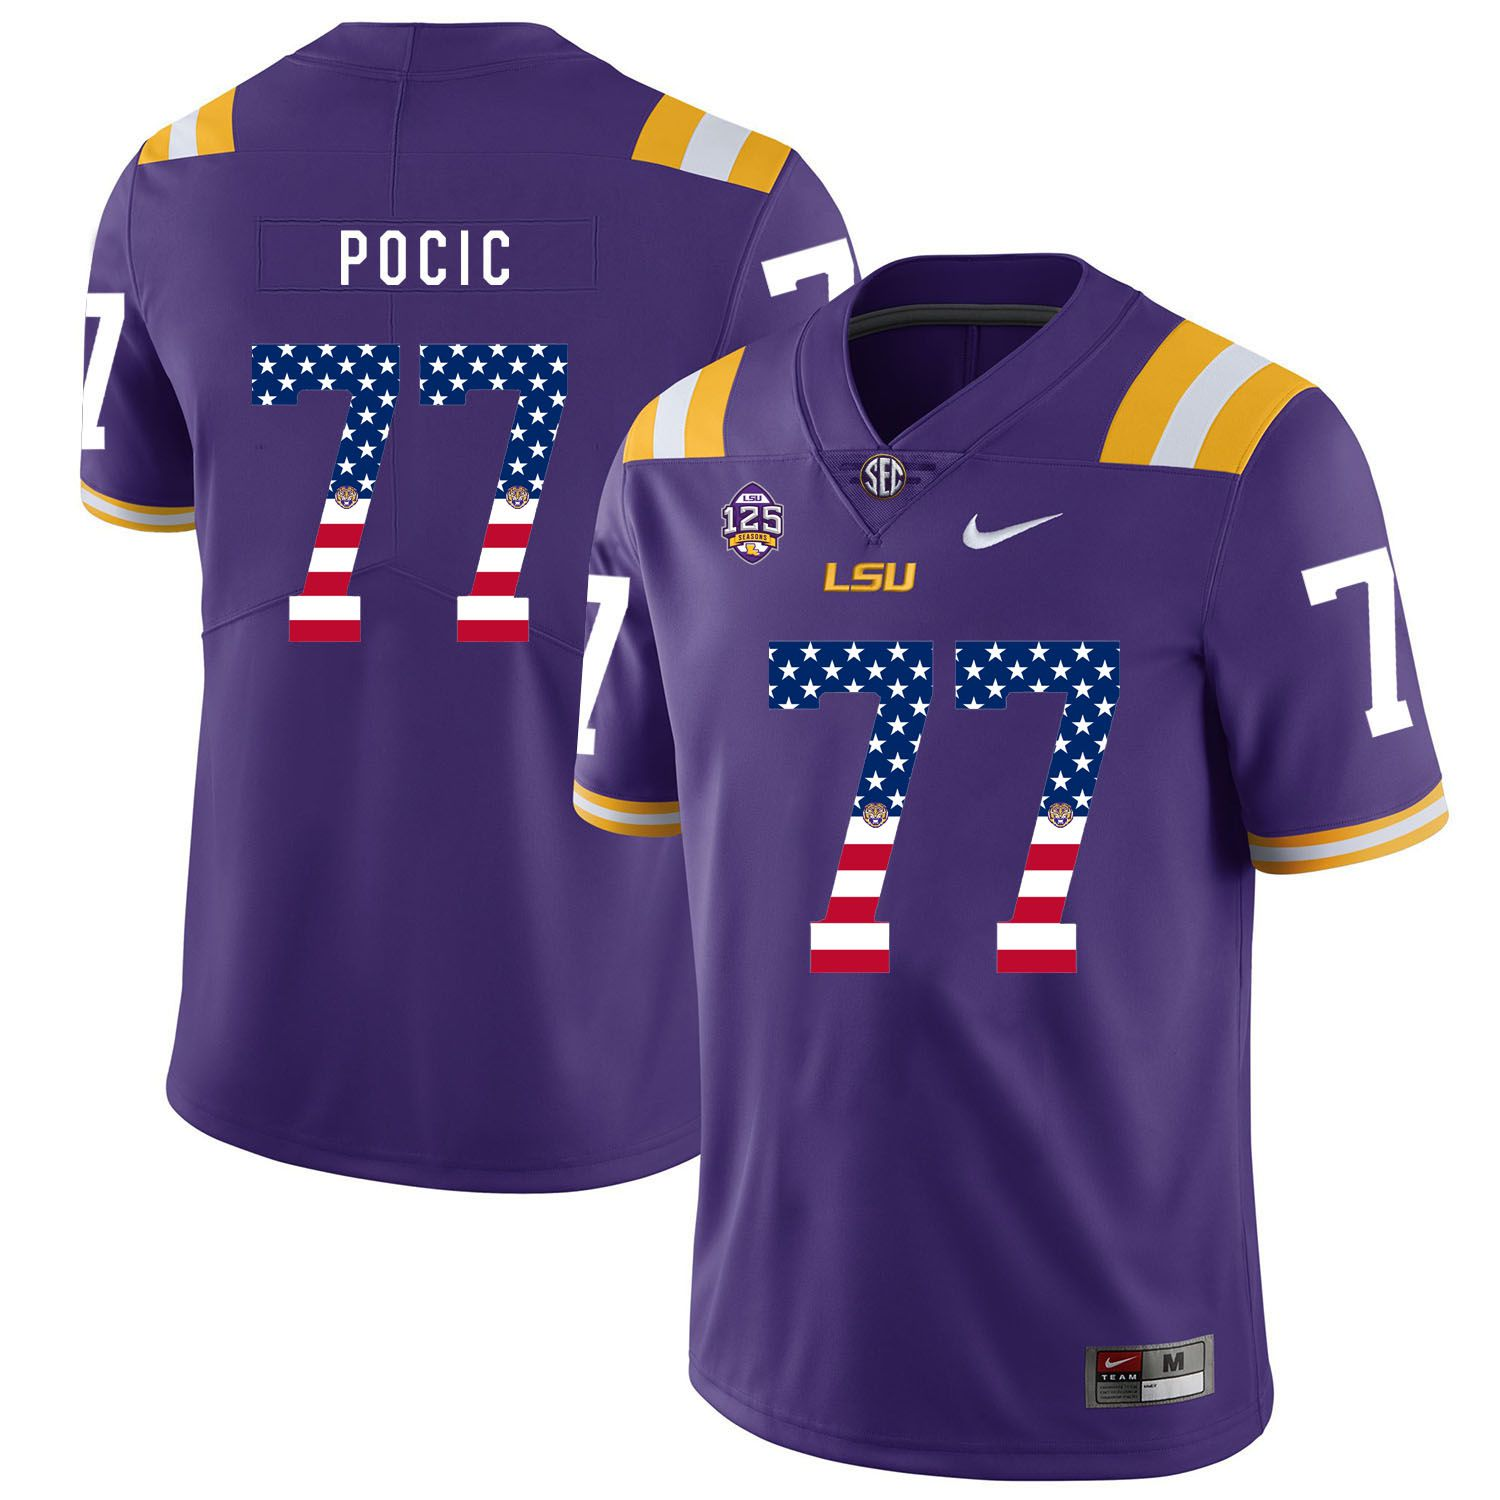 Men LSU Tigers 77 Pocic Purple Flag Customized NCAA Jerseys